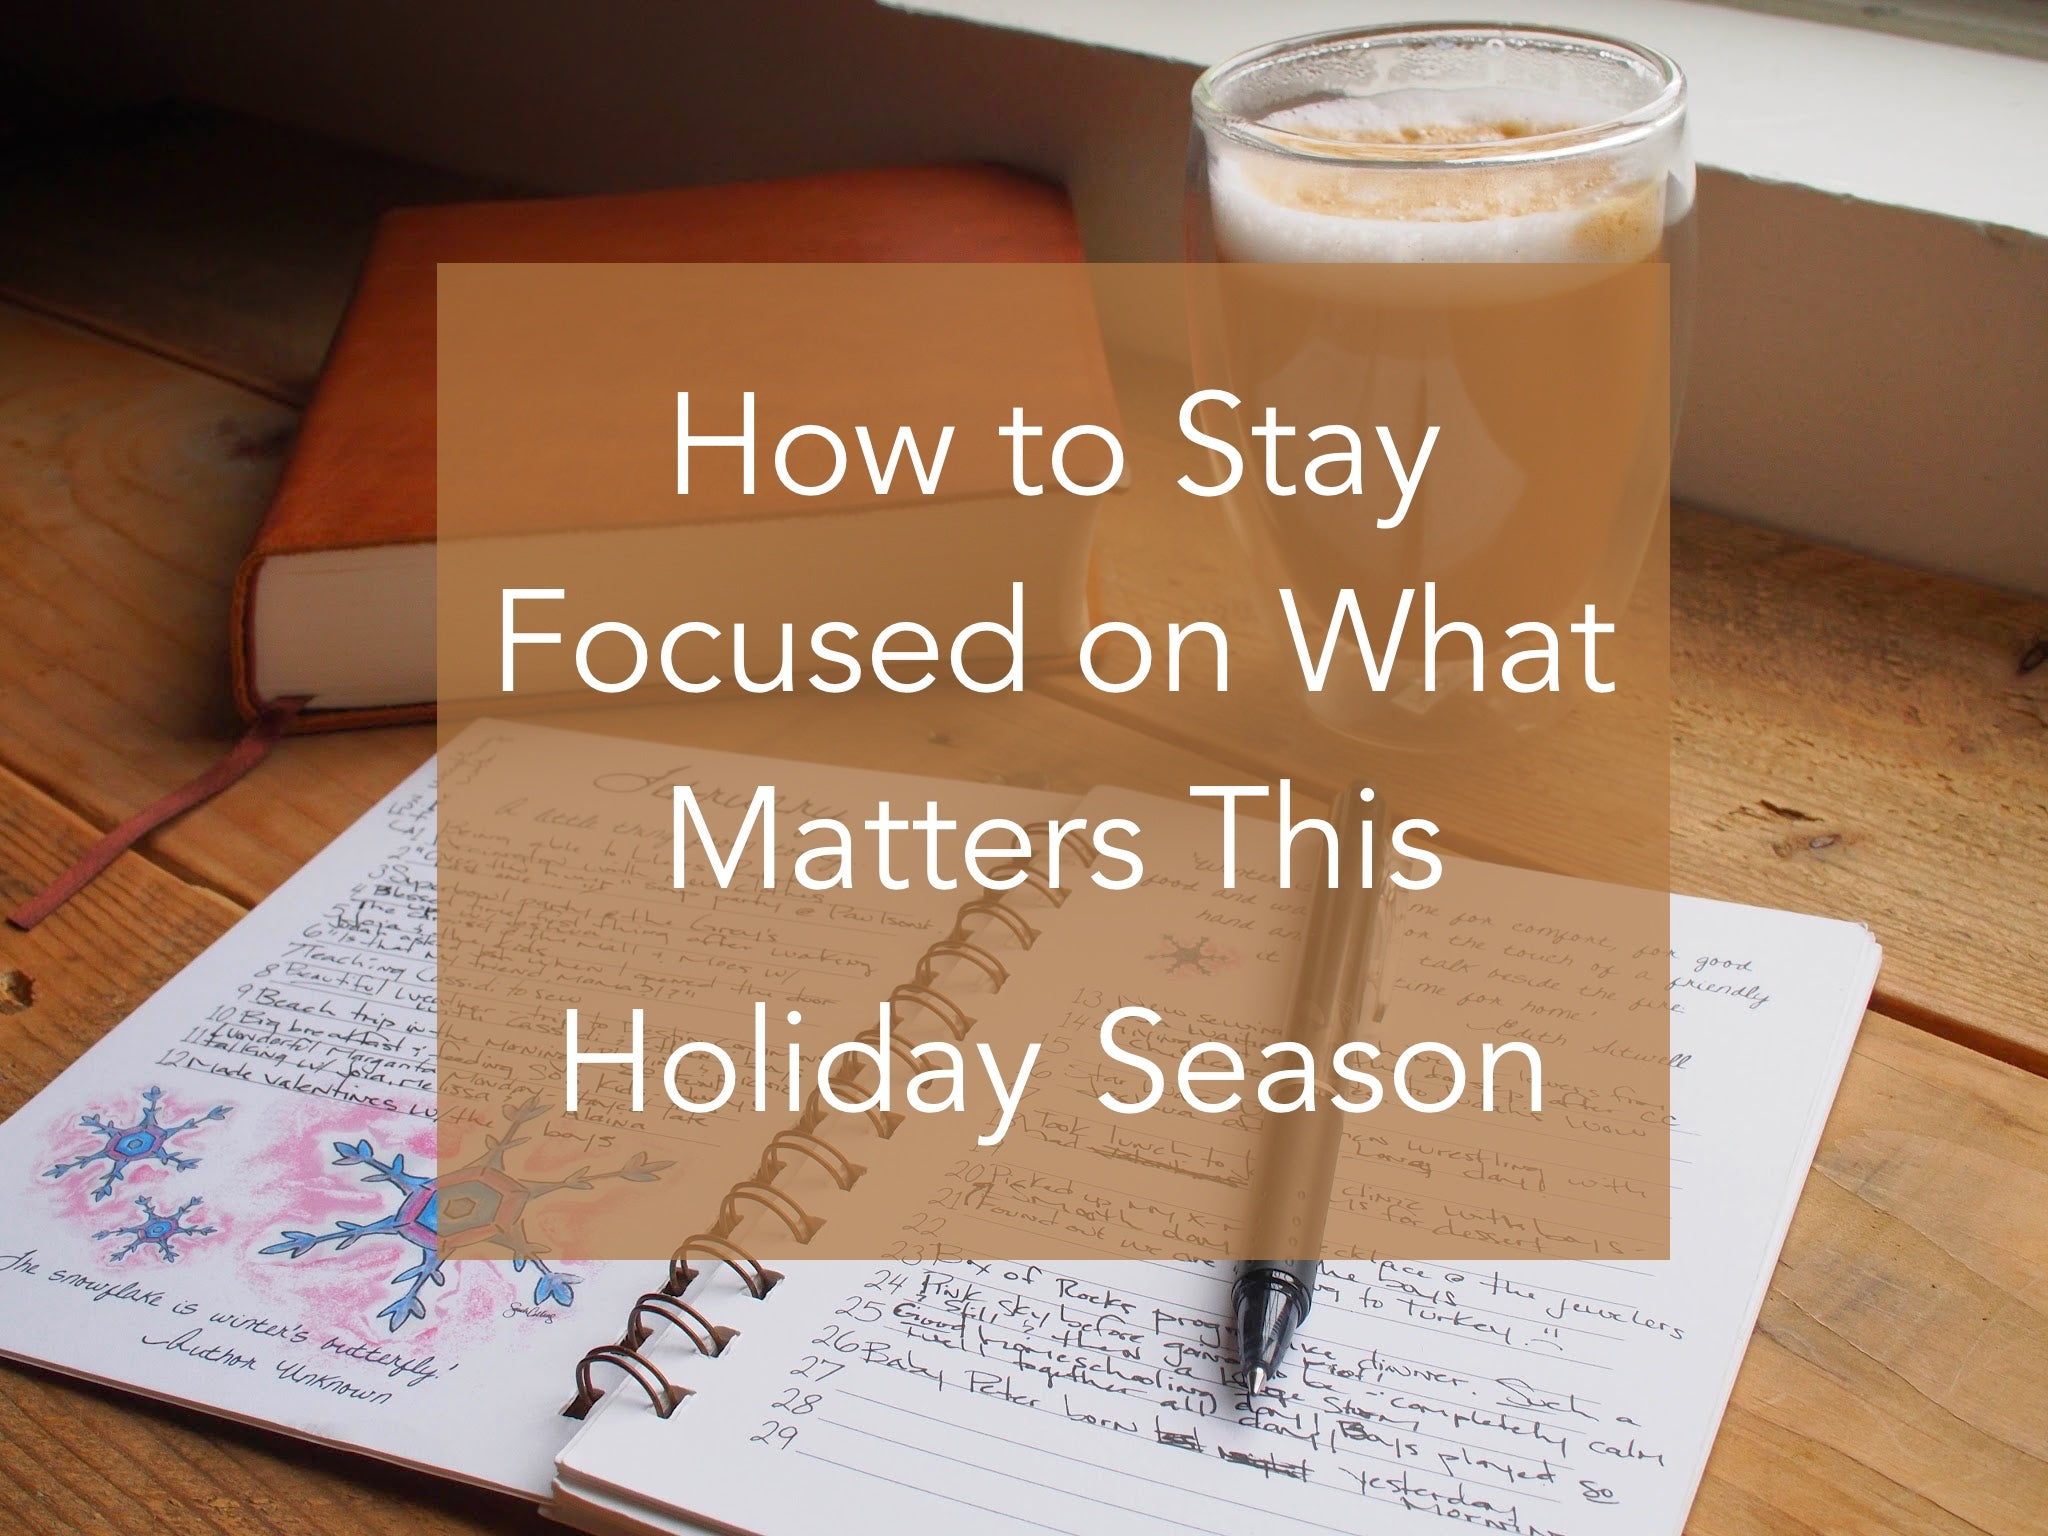 How to Stay Focused on What Matters This Holiday Season